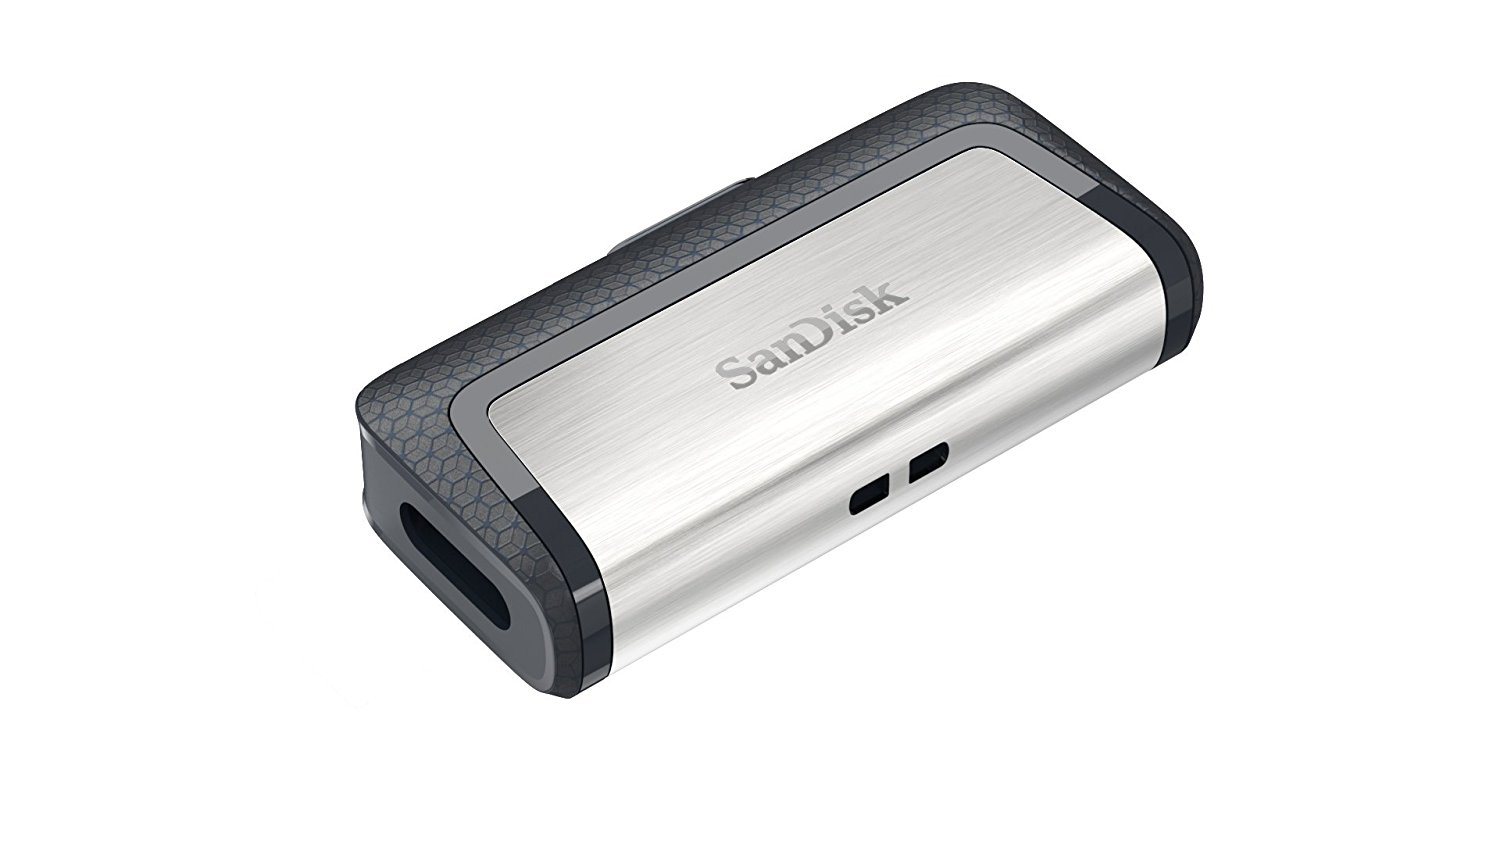 SanDisk USB Stick Dual USB amazon